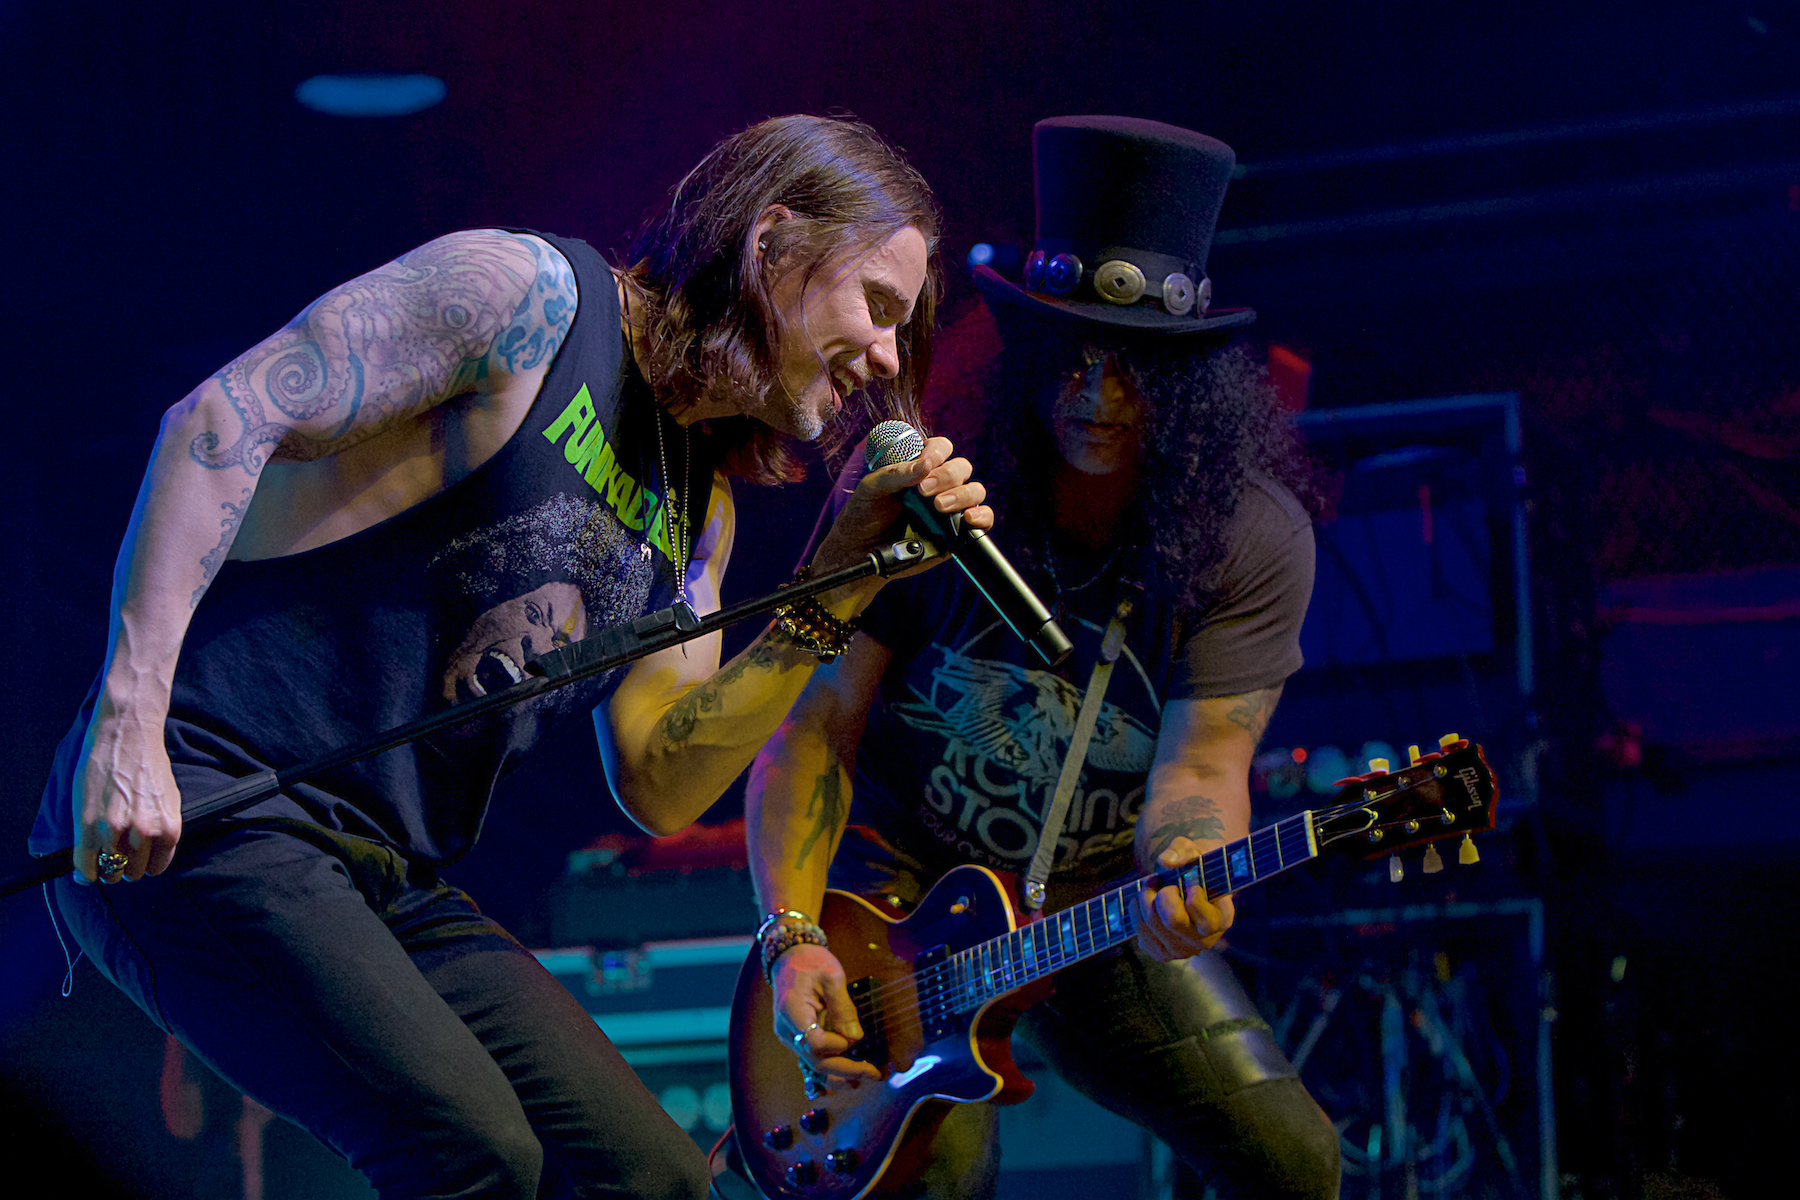 Slash featuring Myles Kennedy and the Conspirators North Seventh  Philadelphia, Pa October 10, 2018  DerekBrad.com